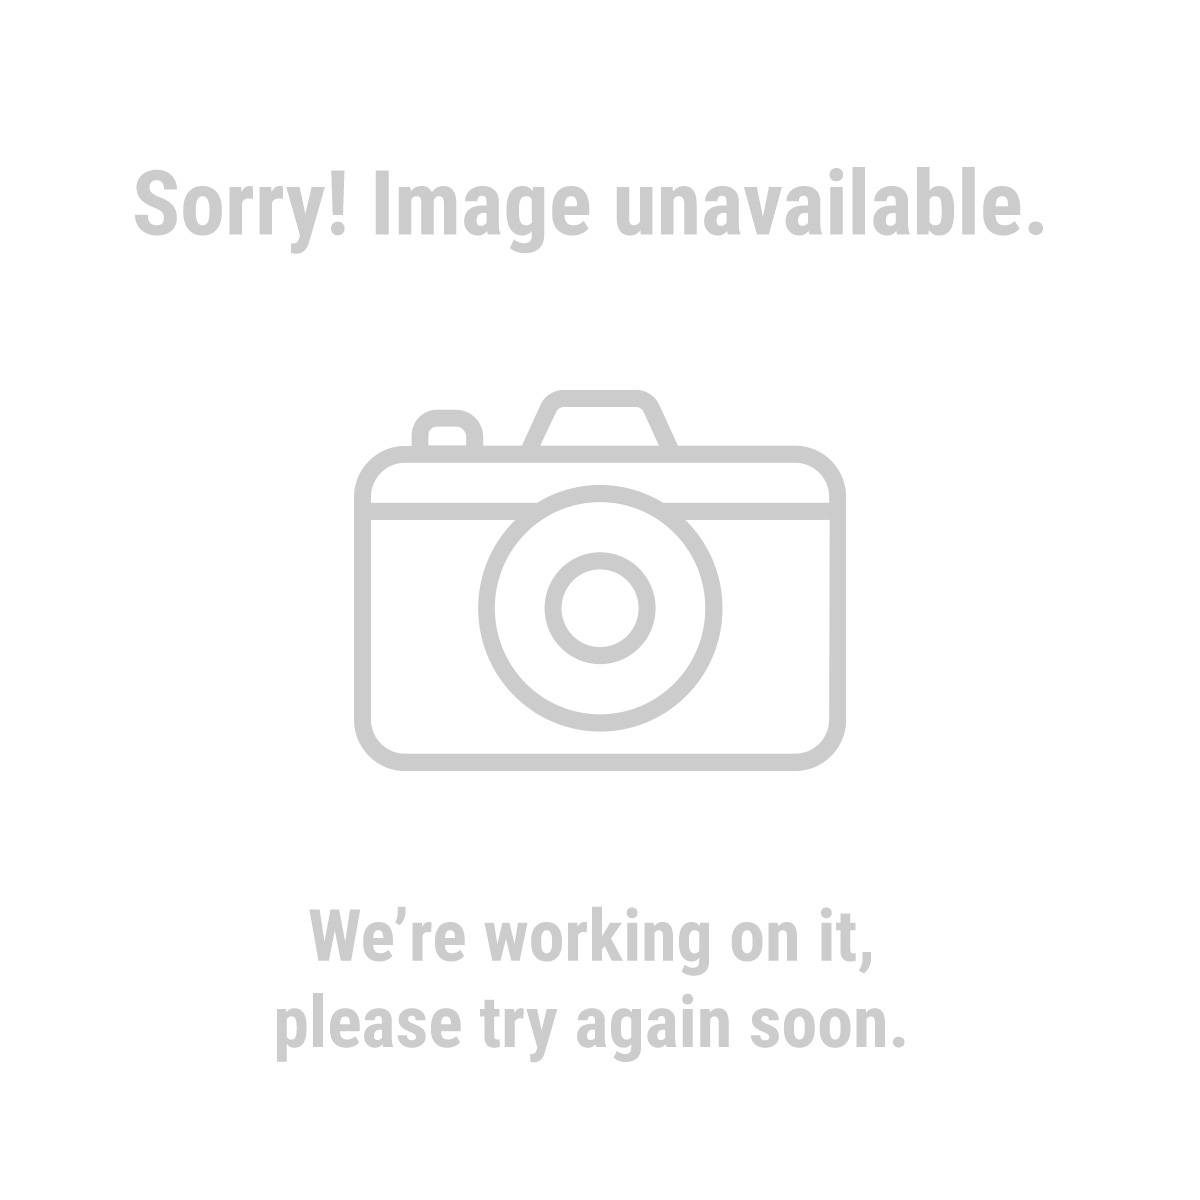 "HFT 1438 29 ft. 4"" x 59 ft. Reflective Heavy Duty Silver Tarp"